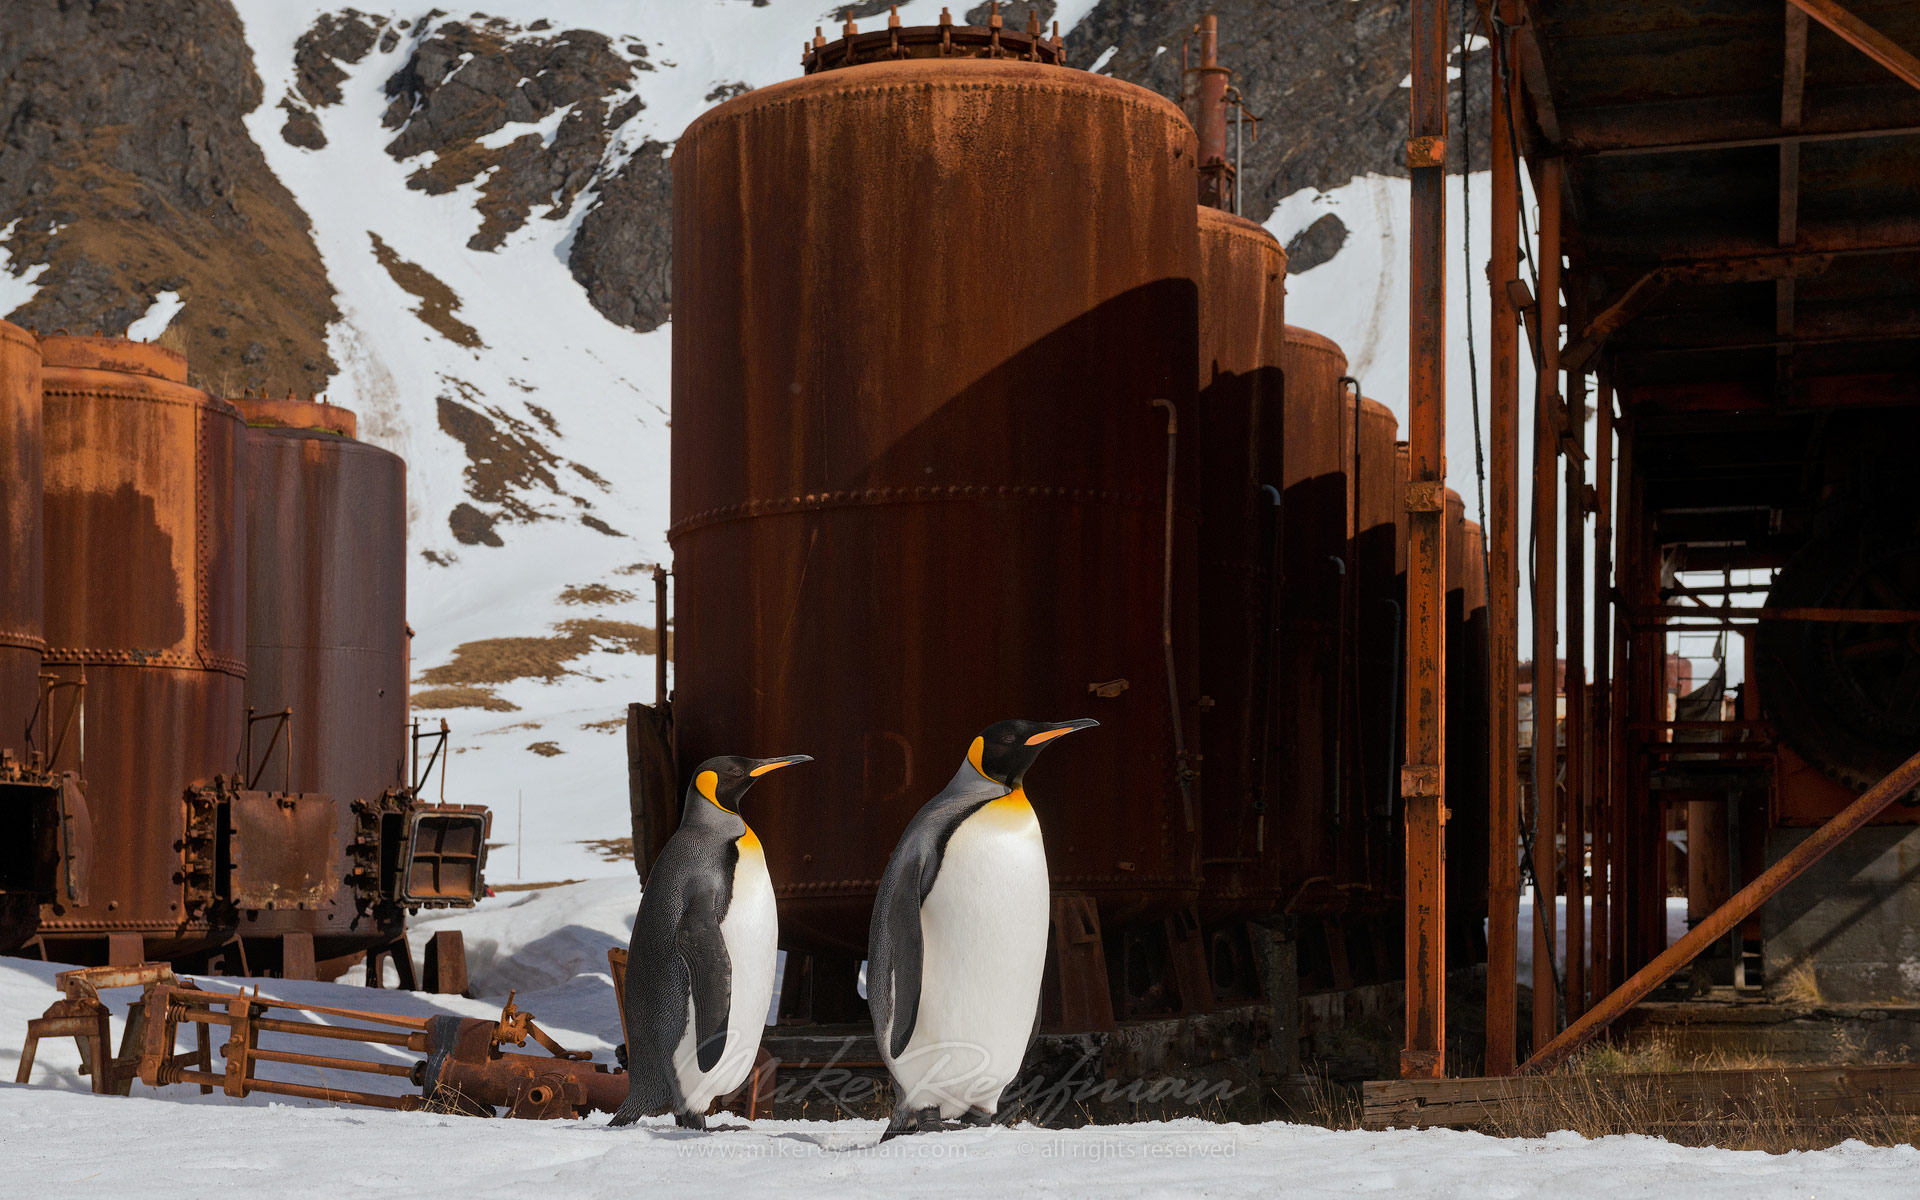 King Penguins (Aptenodytes patagonicus) exploring abandoned Grytviken Whaling Station. South Georgia, Sub-Antarctic - King-Penguins-South-Georgia-Sub-Antarctic - Mike Reyfman Photography